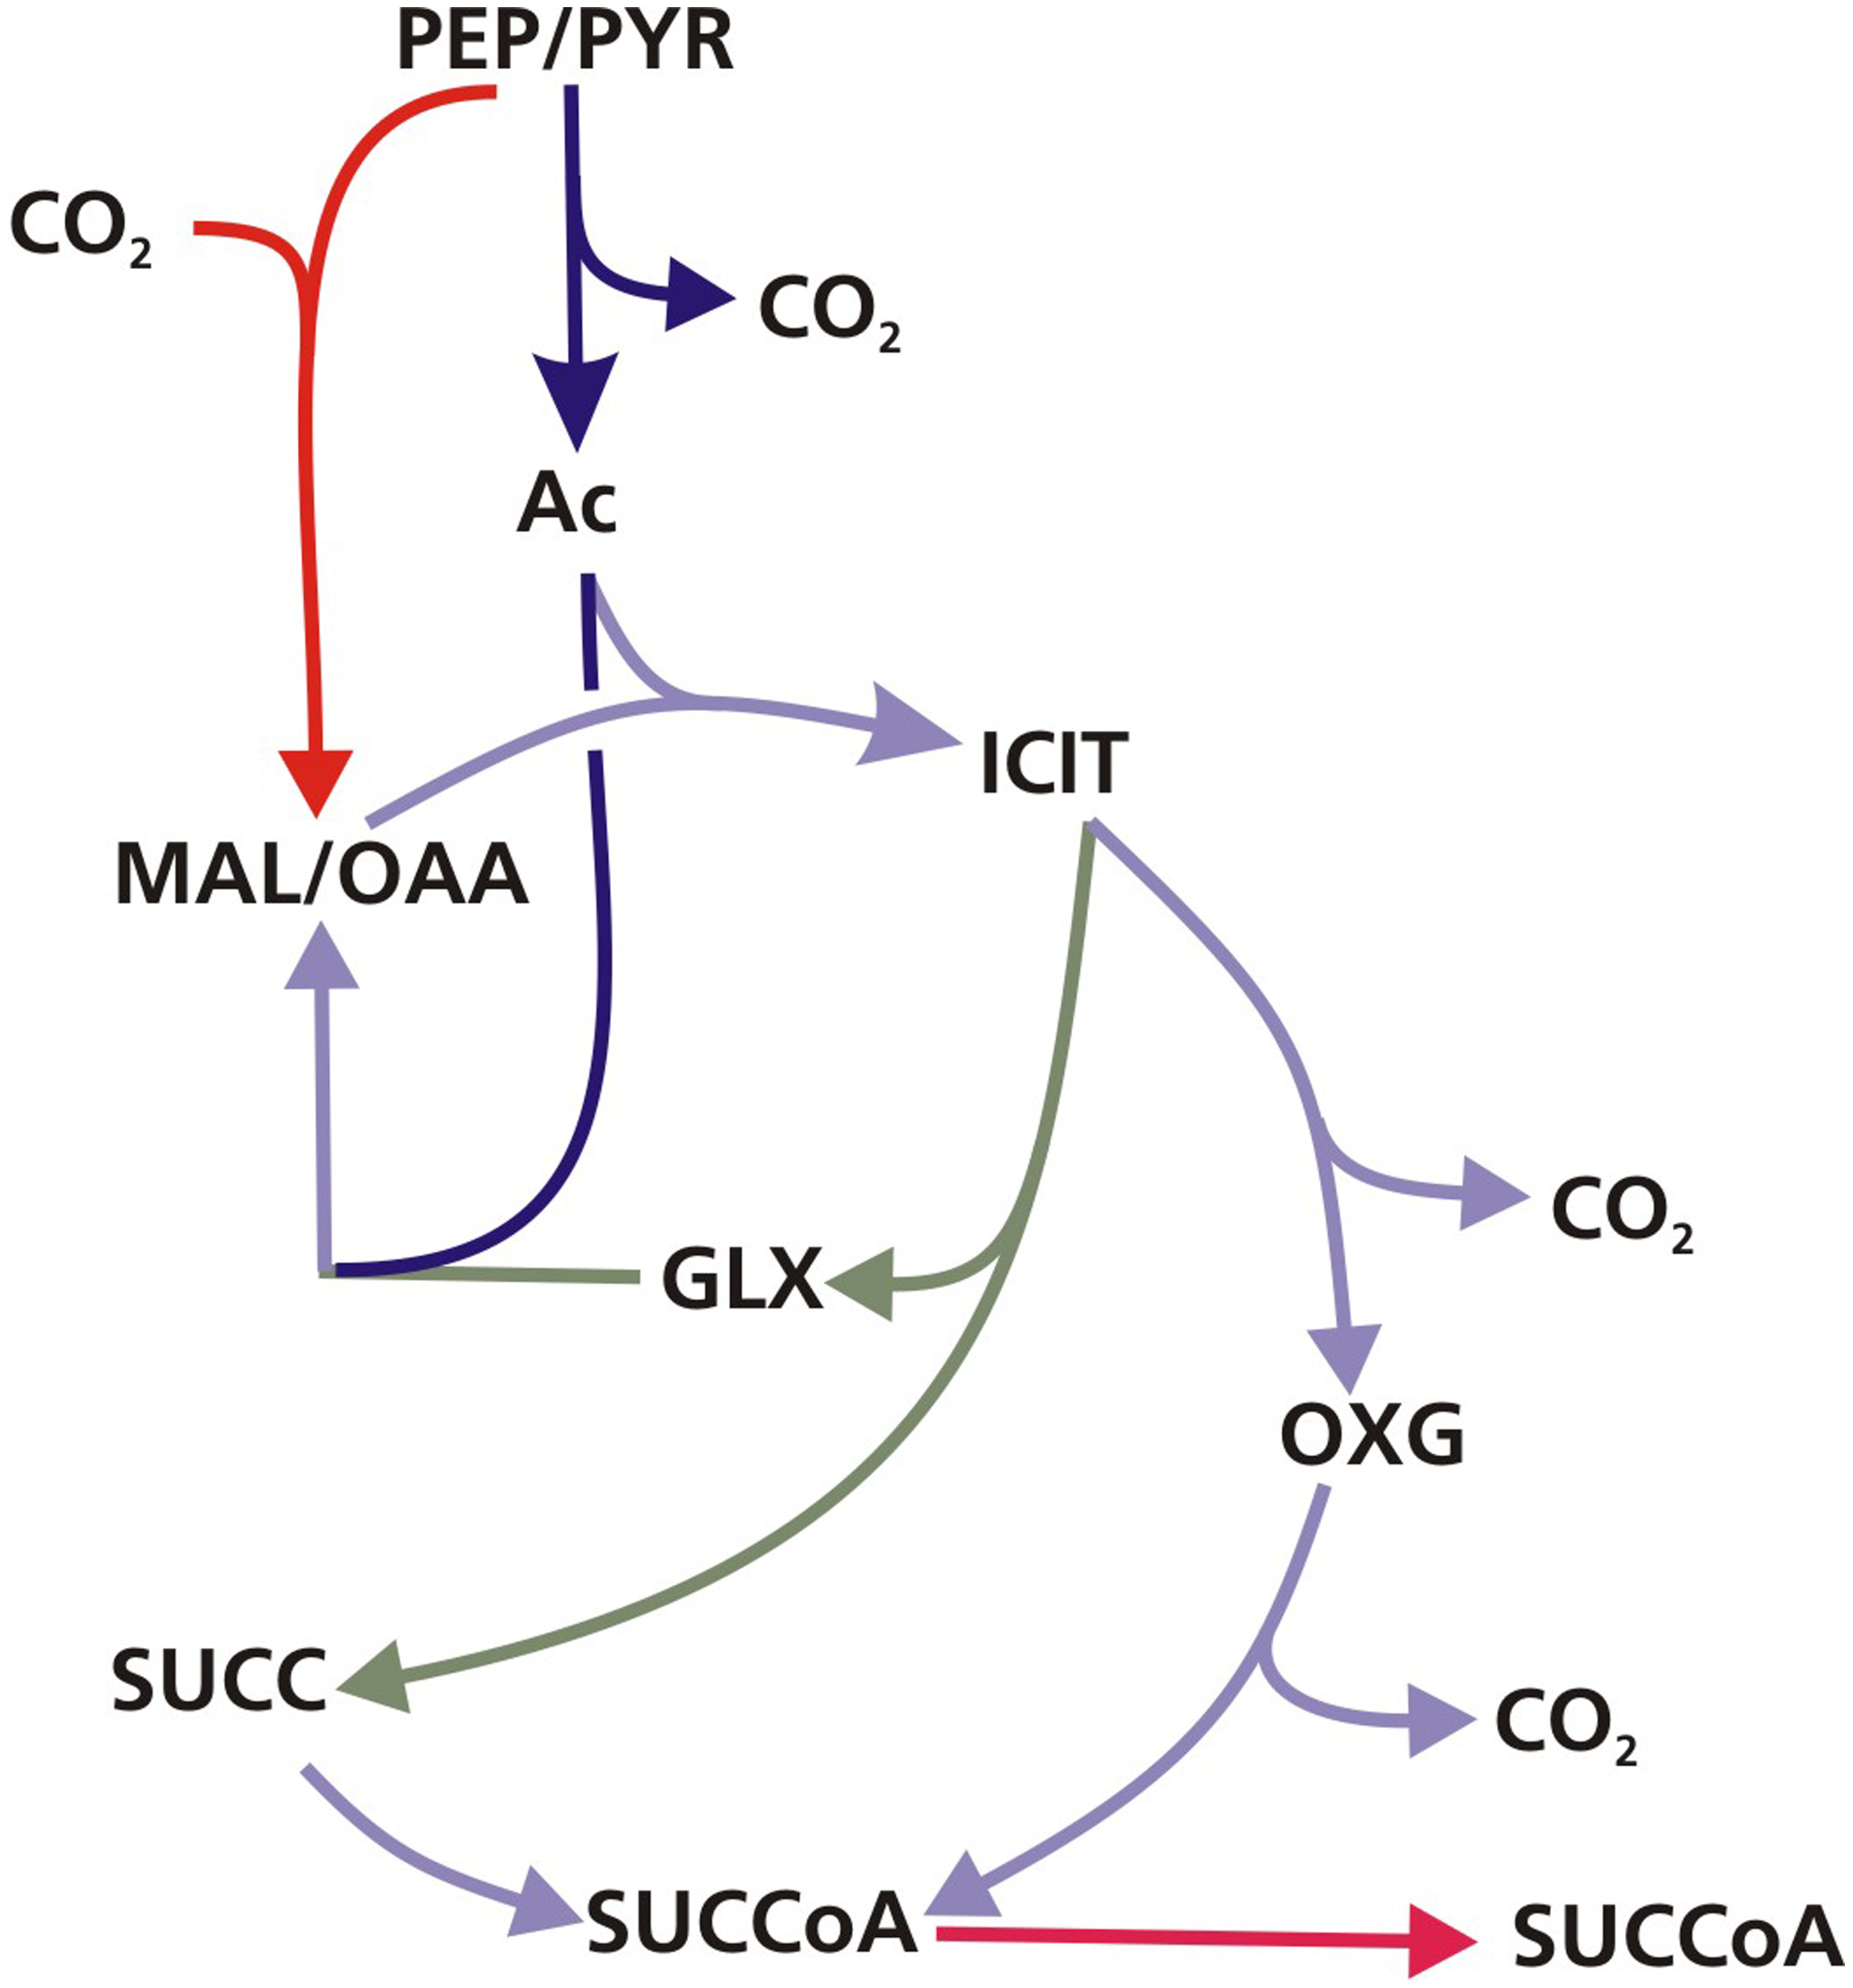 The GAS pathway.